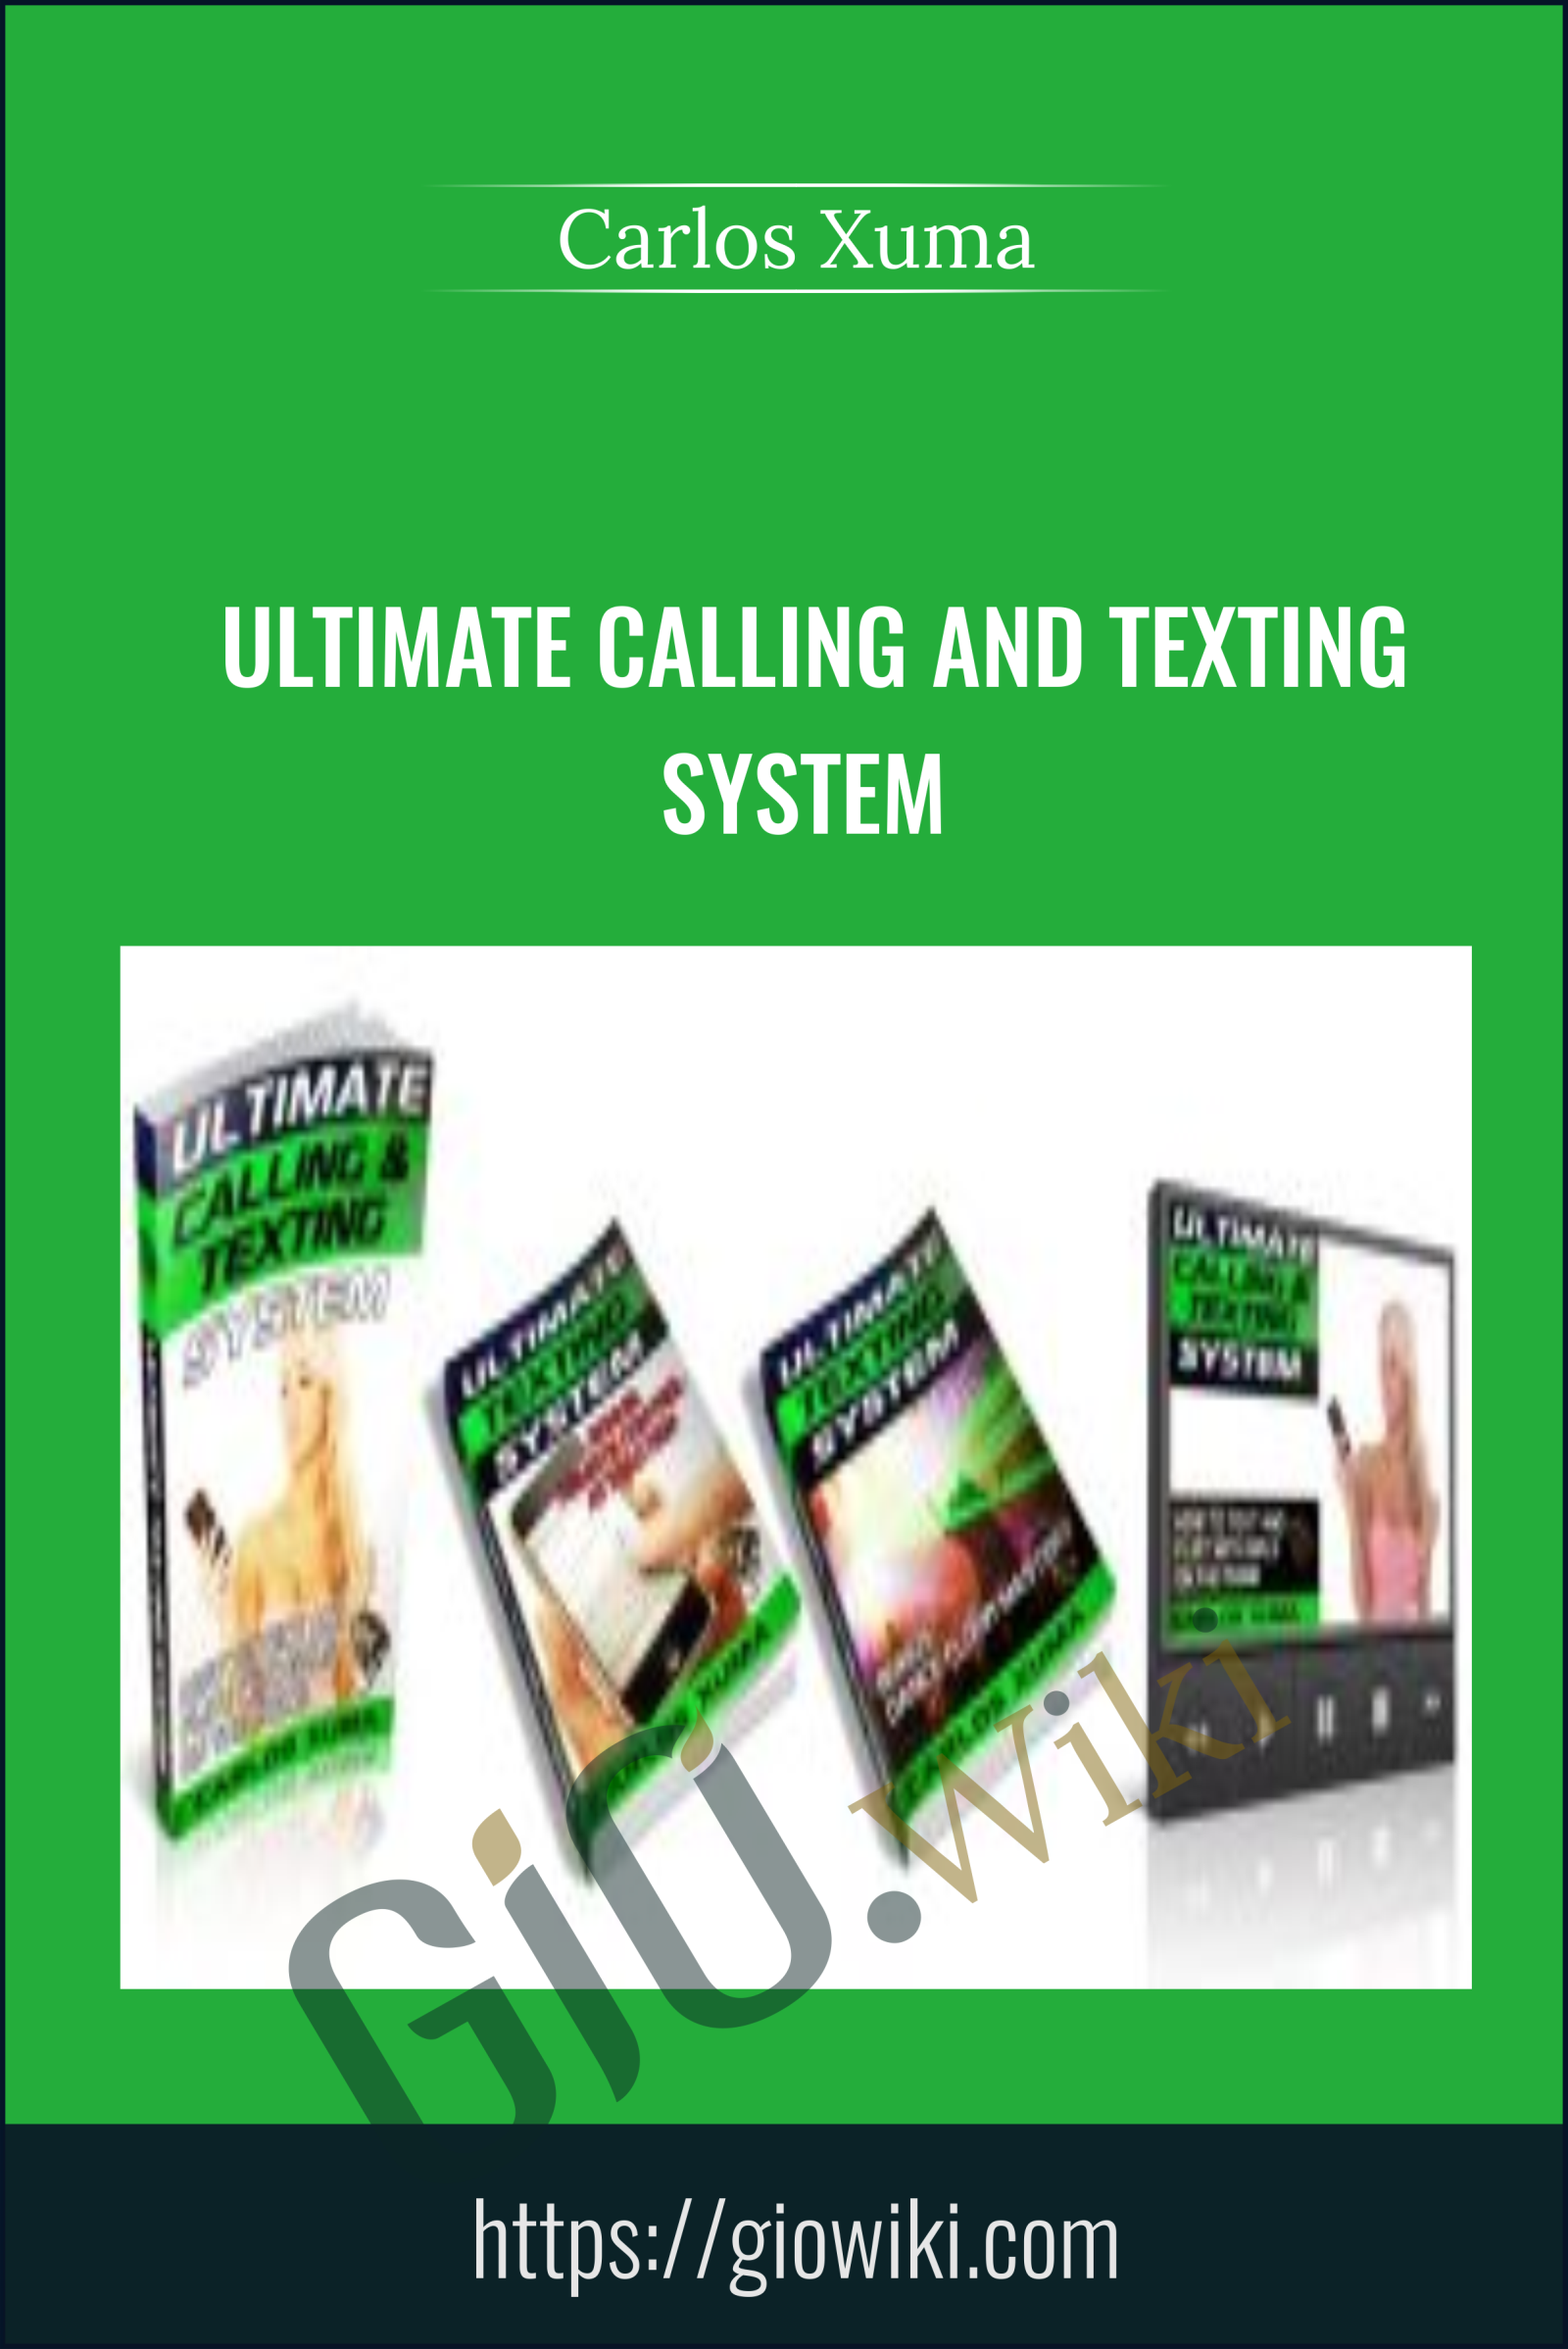 Ultimate Calling and Texting System - Carlos Xuma